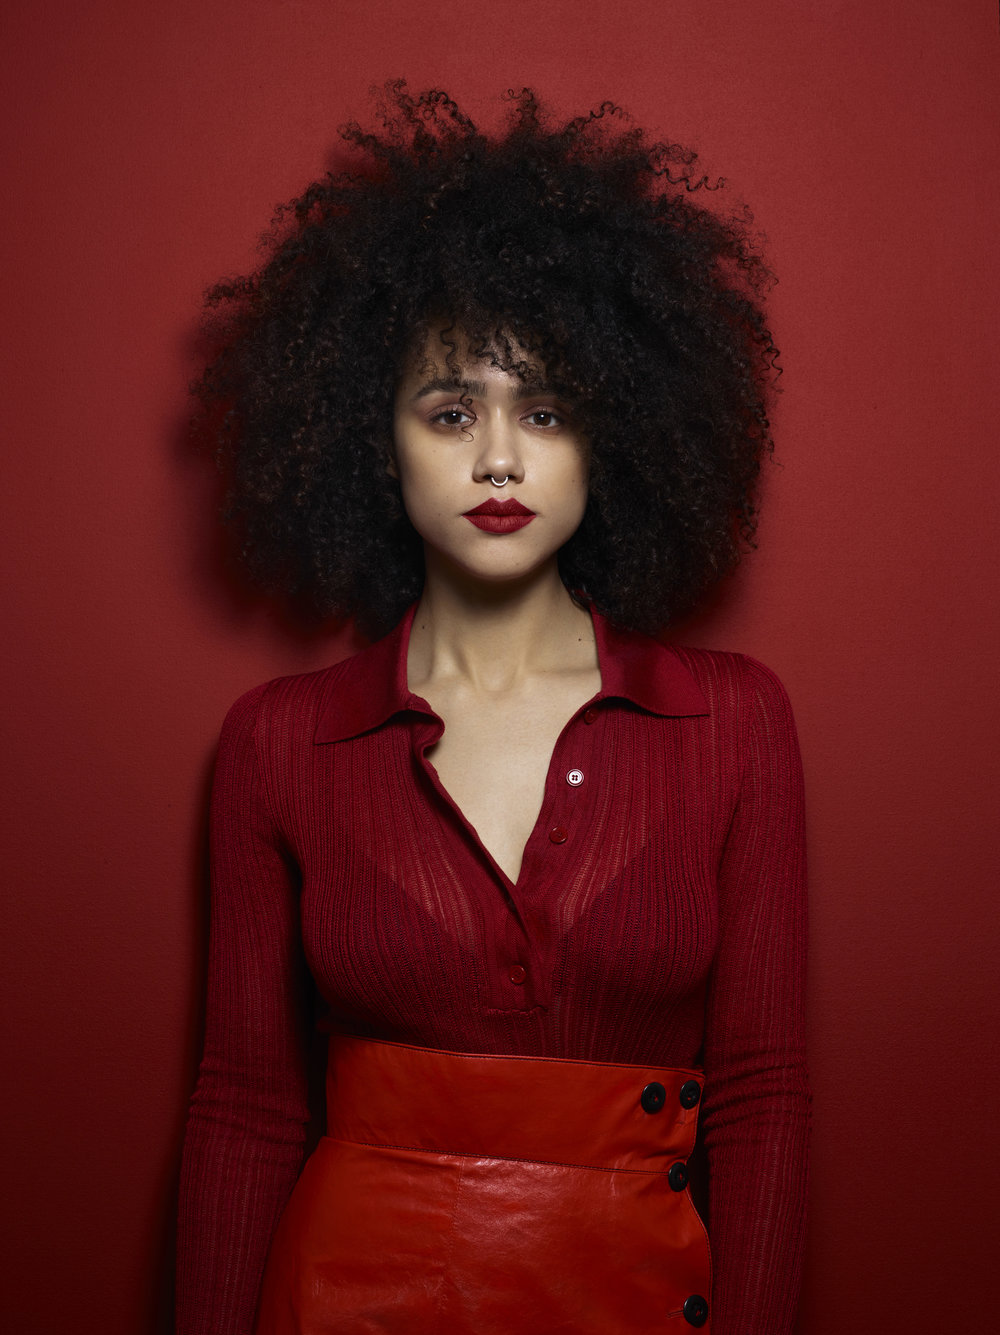 "Nathalie Emmanuel - We are excited to announce that actress Nathalie Emmanuel who has gained international recognition by starring as Missandei in the HBO fantasy and Emmy Award winning, series ""Game of Thrones"" will be attending the CRIB Ball as our special guest. She has also played in hit Hollywood films starring alongside Vin Diesel in Furious 7 and Charlize Theron in Maze Runner: The Death Cure."